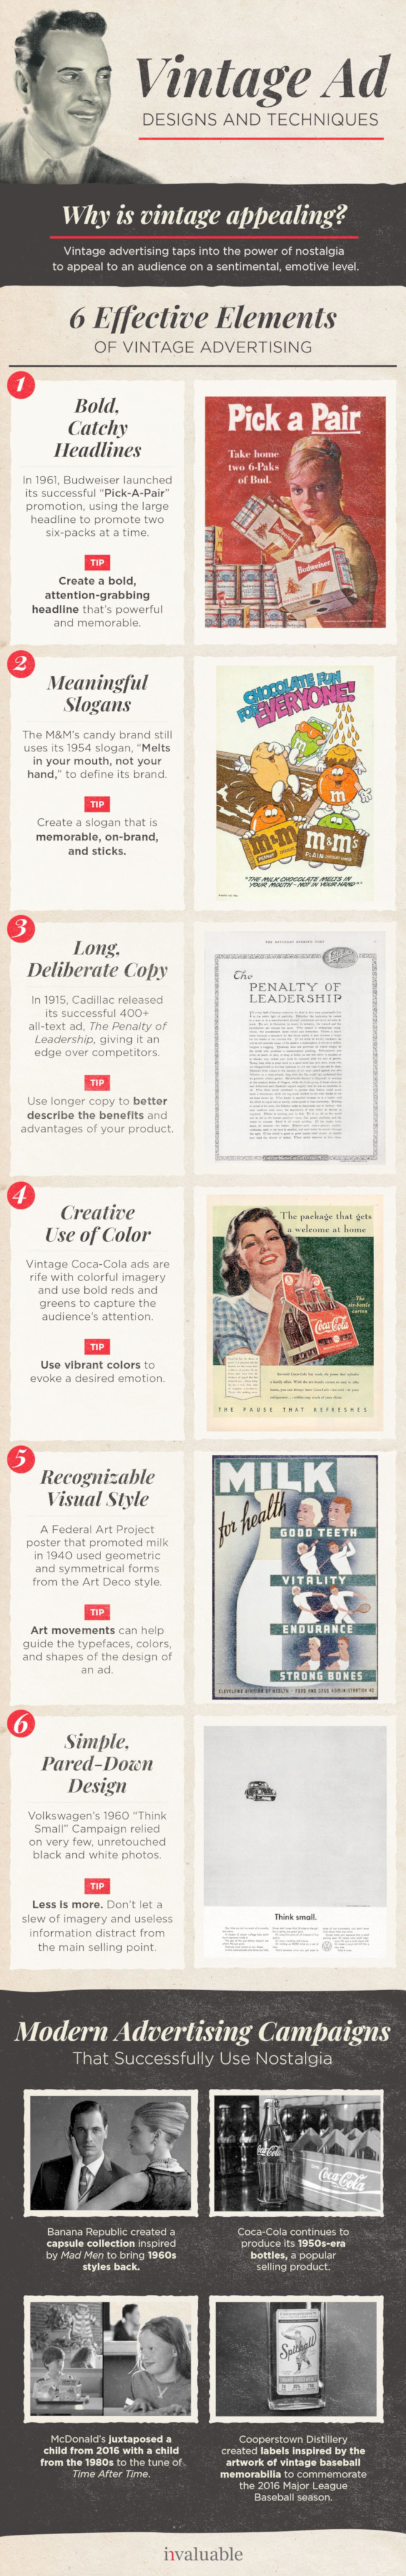 Vintage Ad Techniques that Still Work [Infographic]